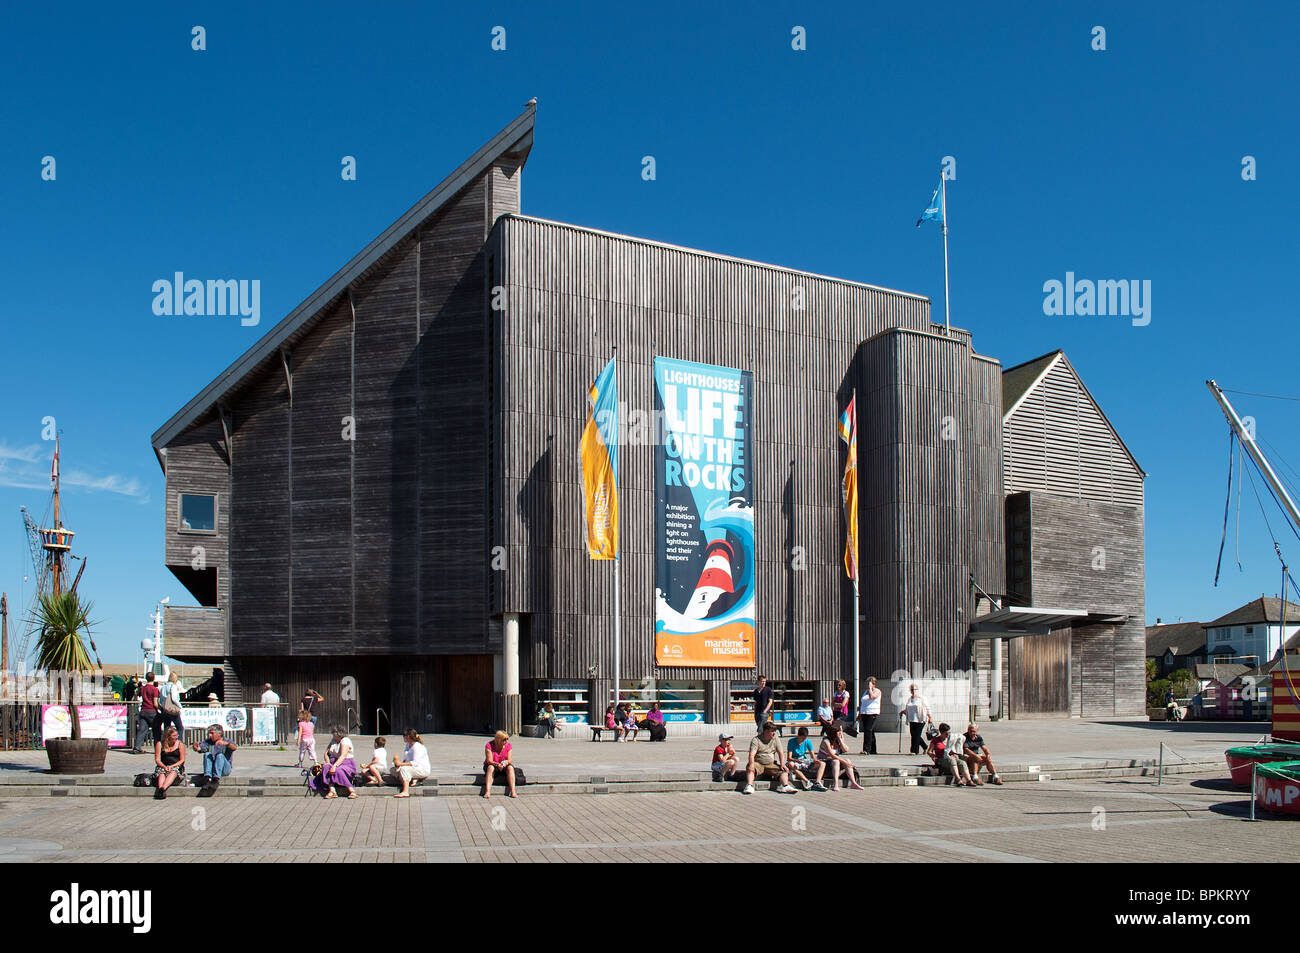 The Maritime museum in Falmouth, Cornwall, UK - Stock Image